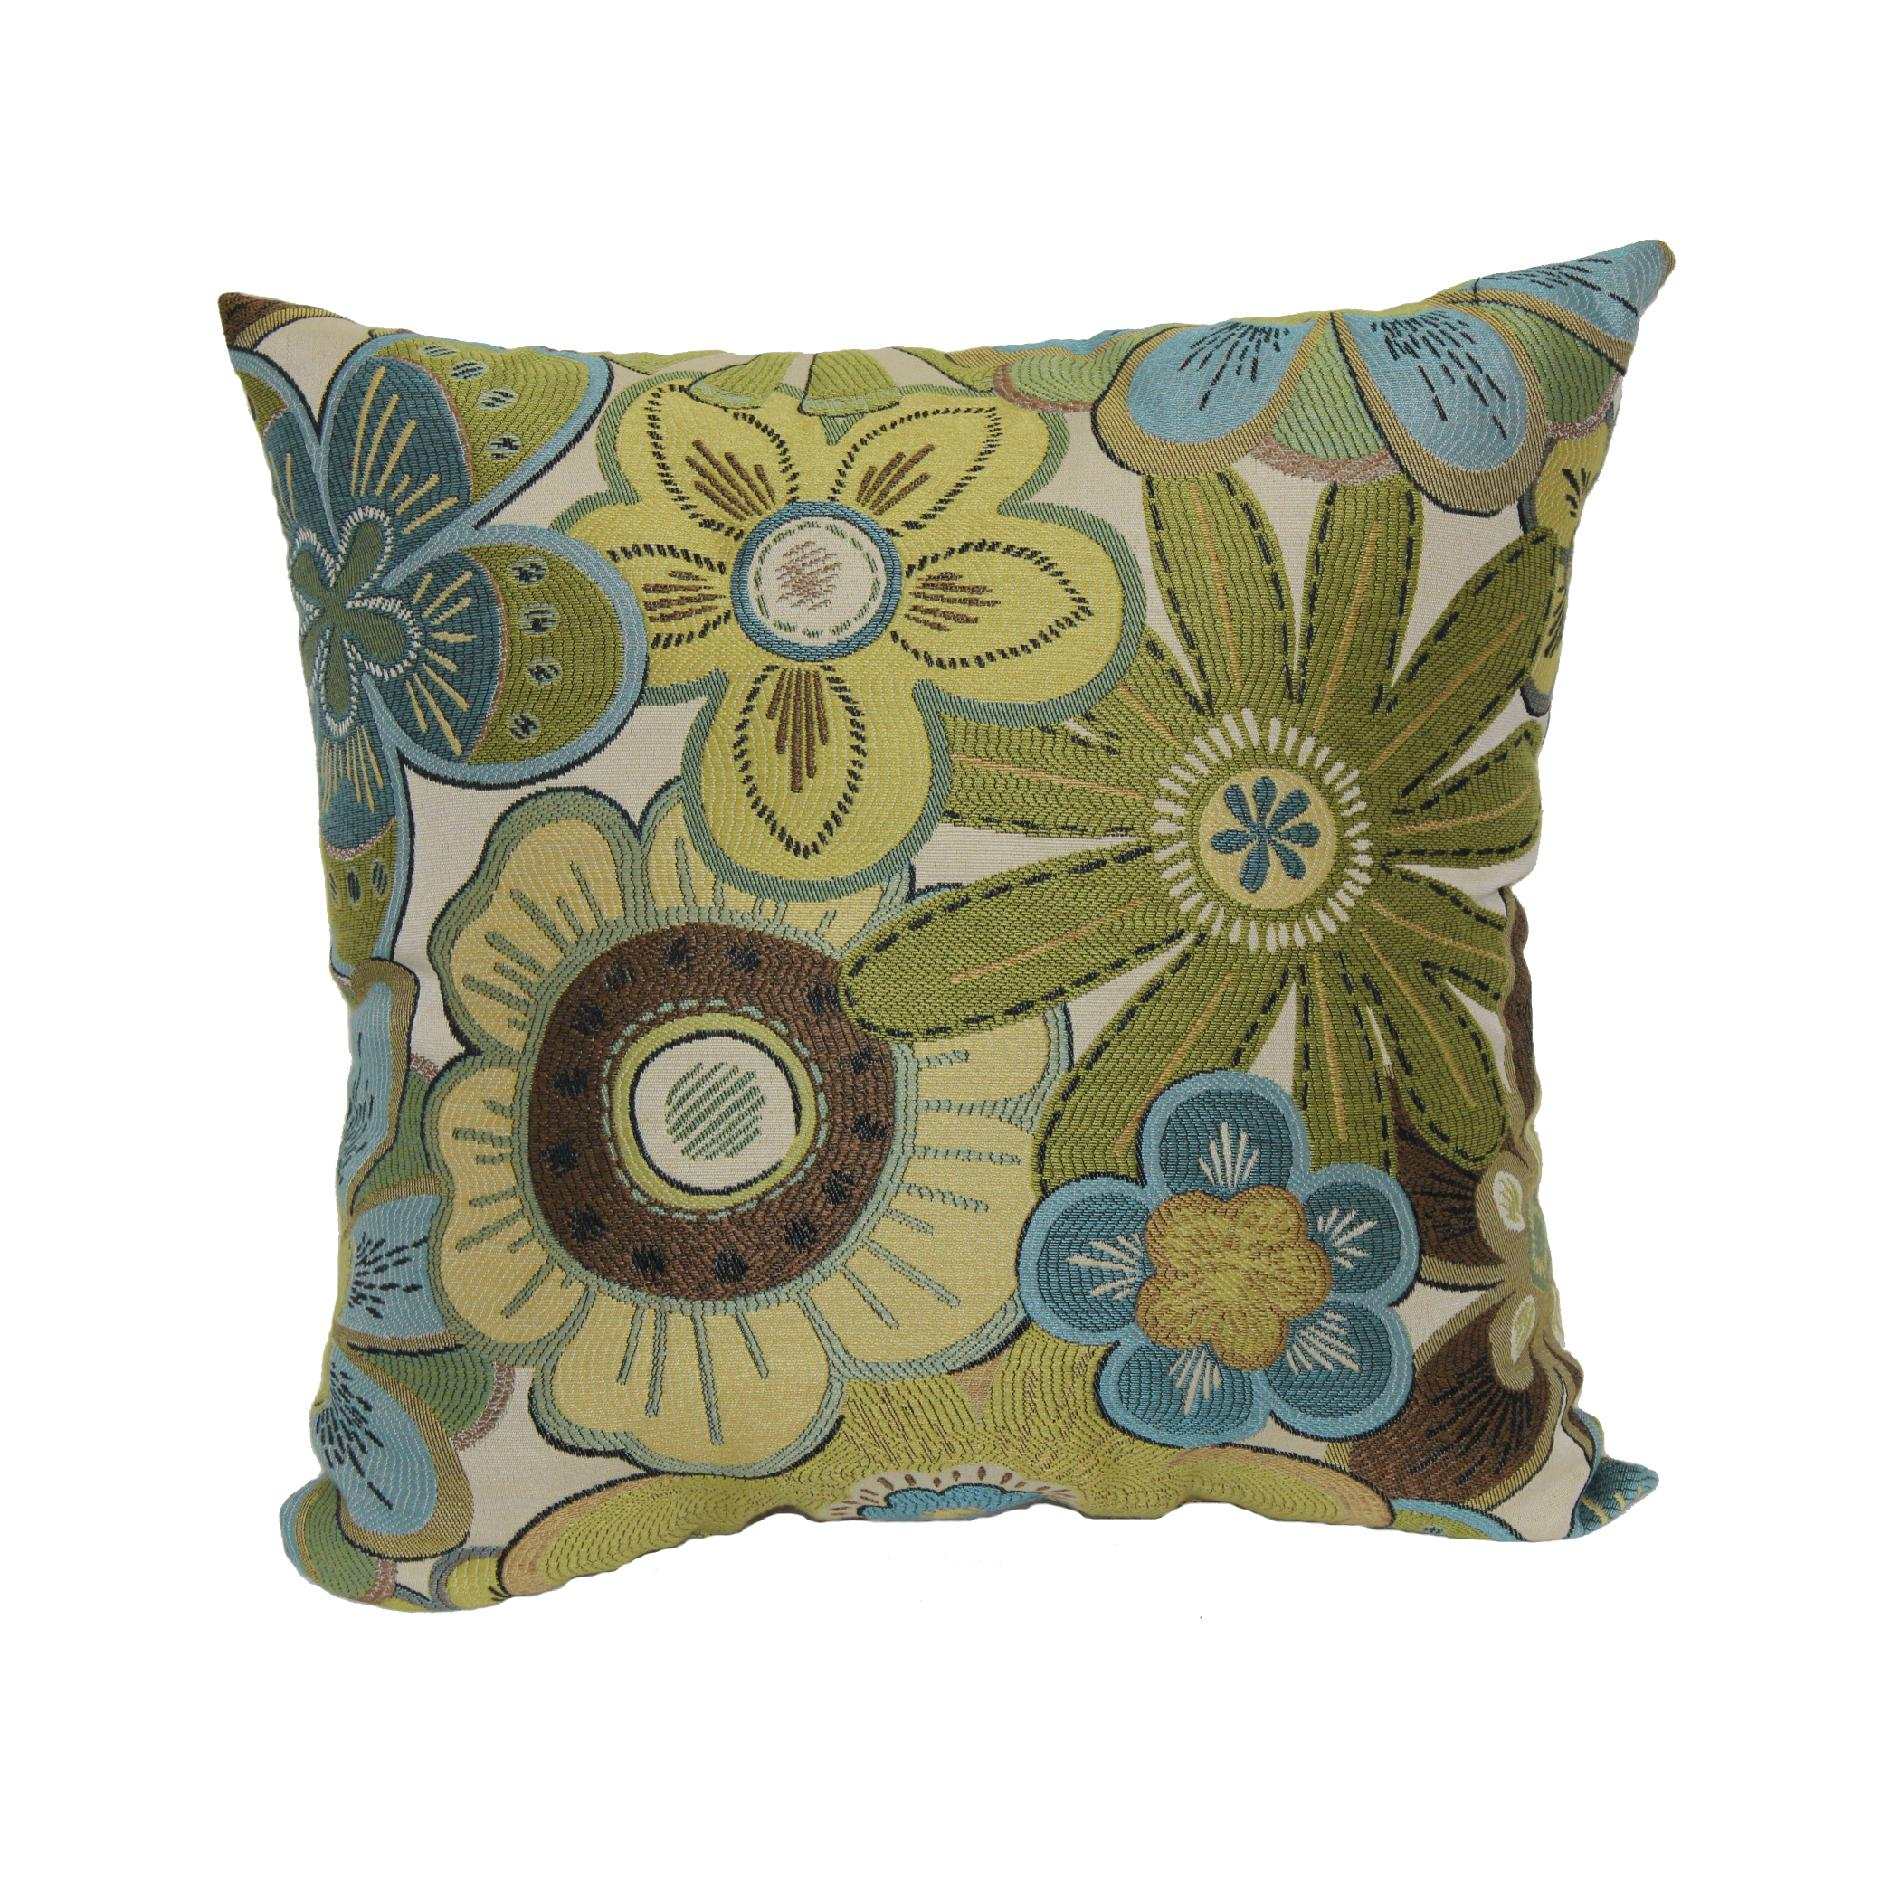 Decorative Pillows Kmart : Essential Home Siobhan Floral Pillow - Lime - Home - Bed & Bath - Bedding - Decorative Pillows ...